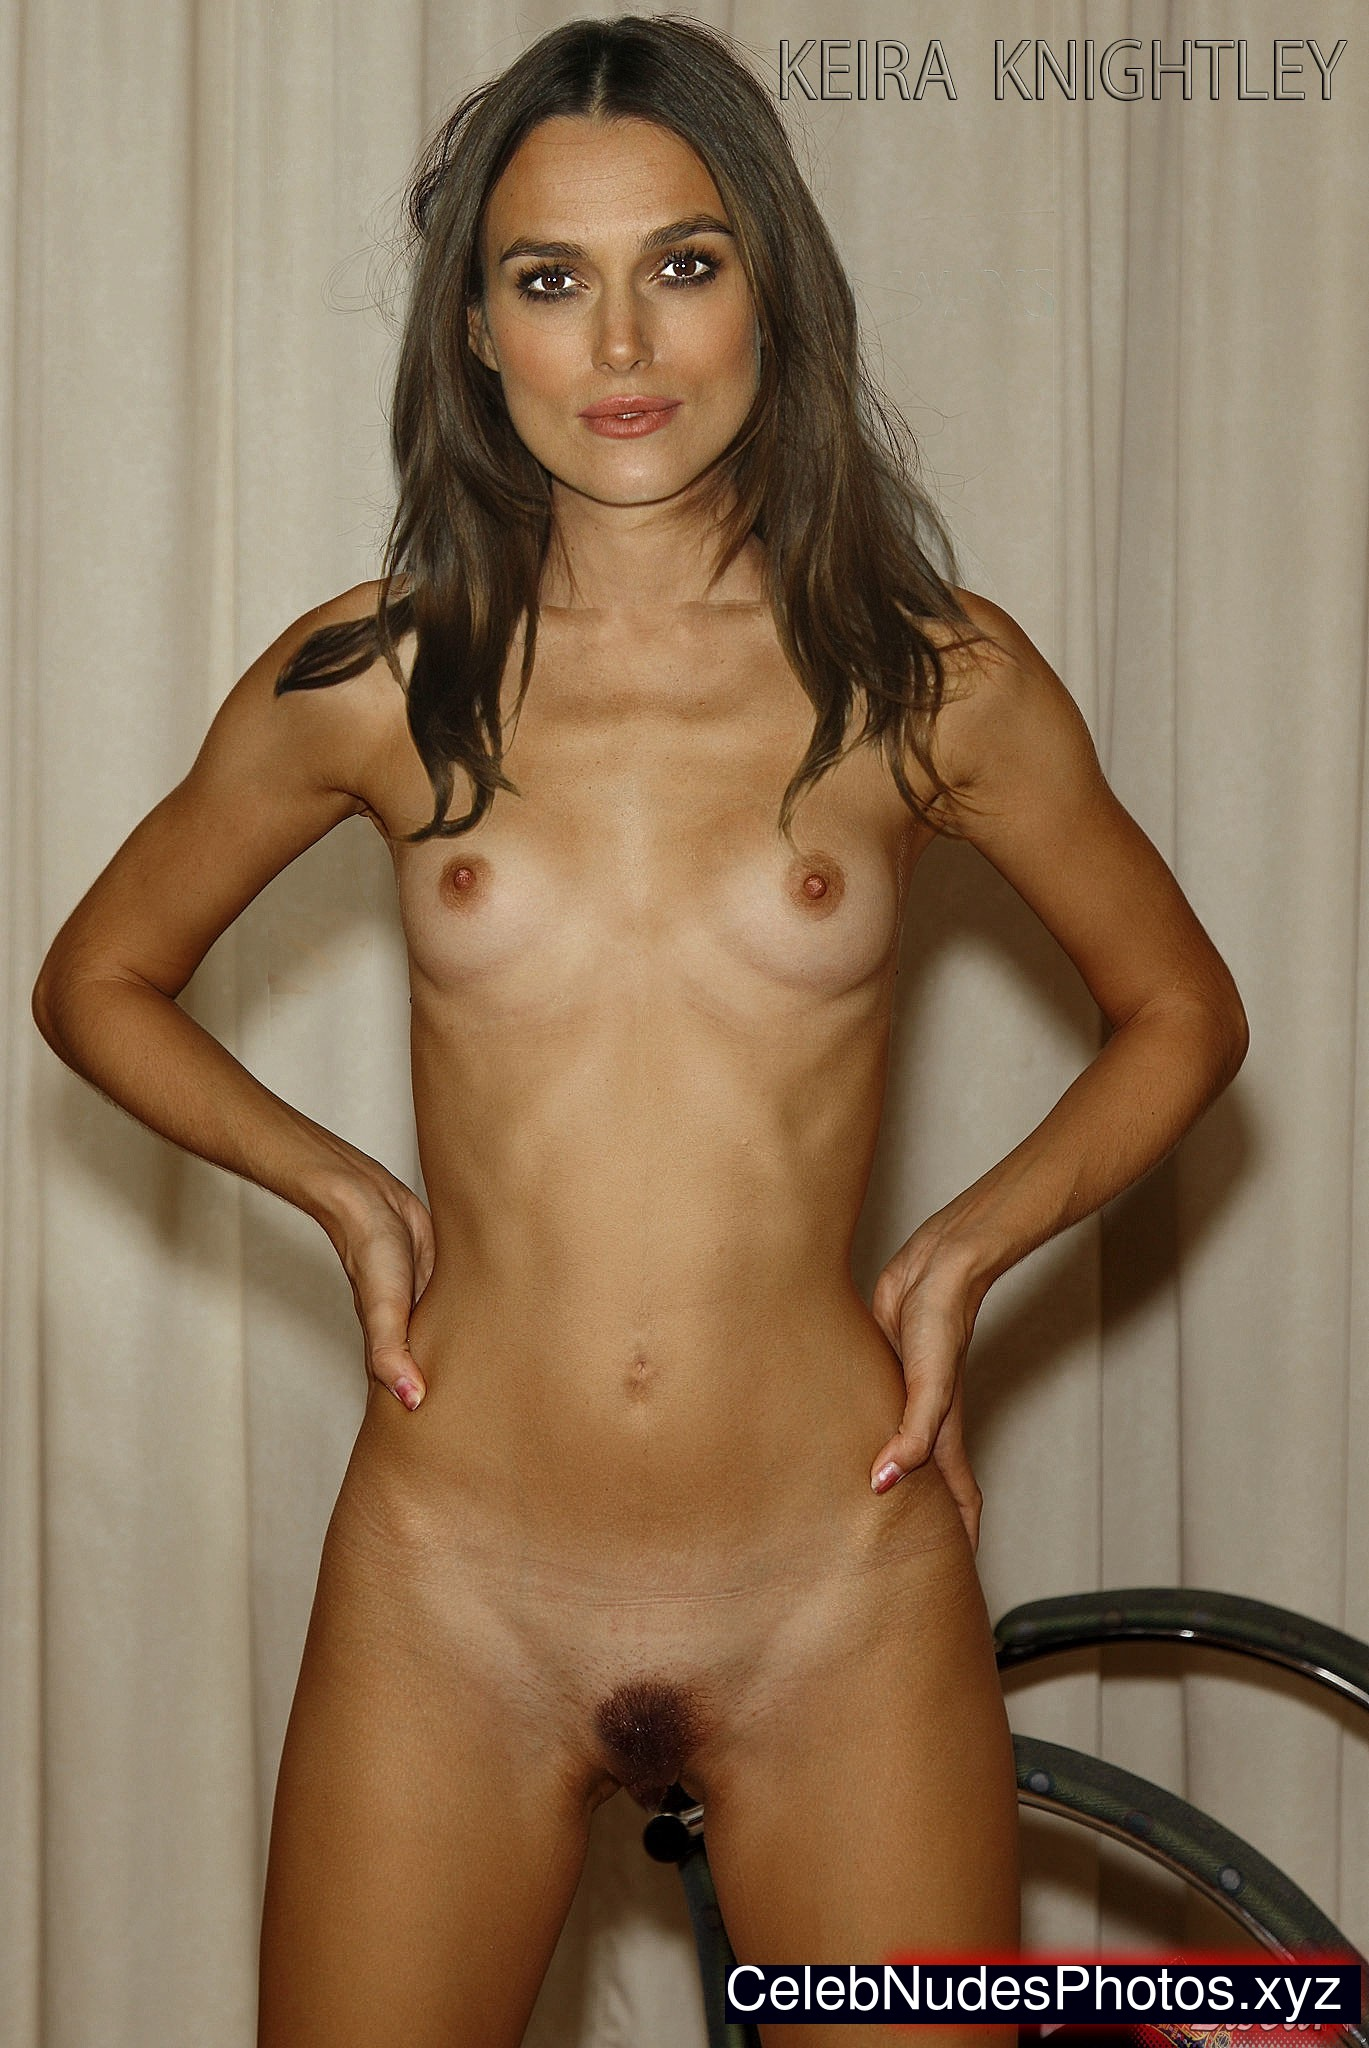 Keira knightley nudes videos free